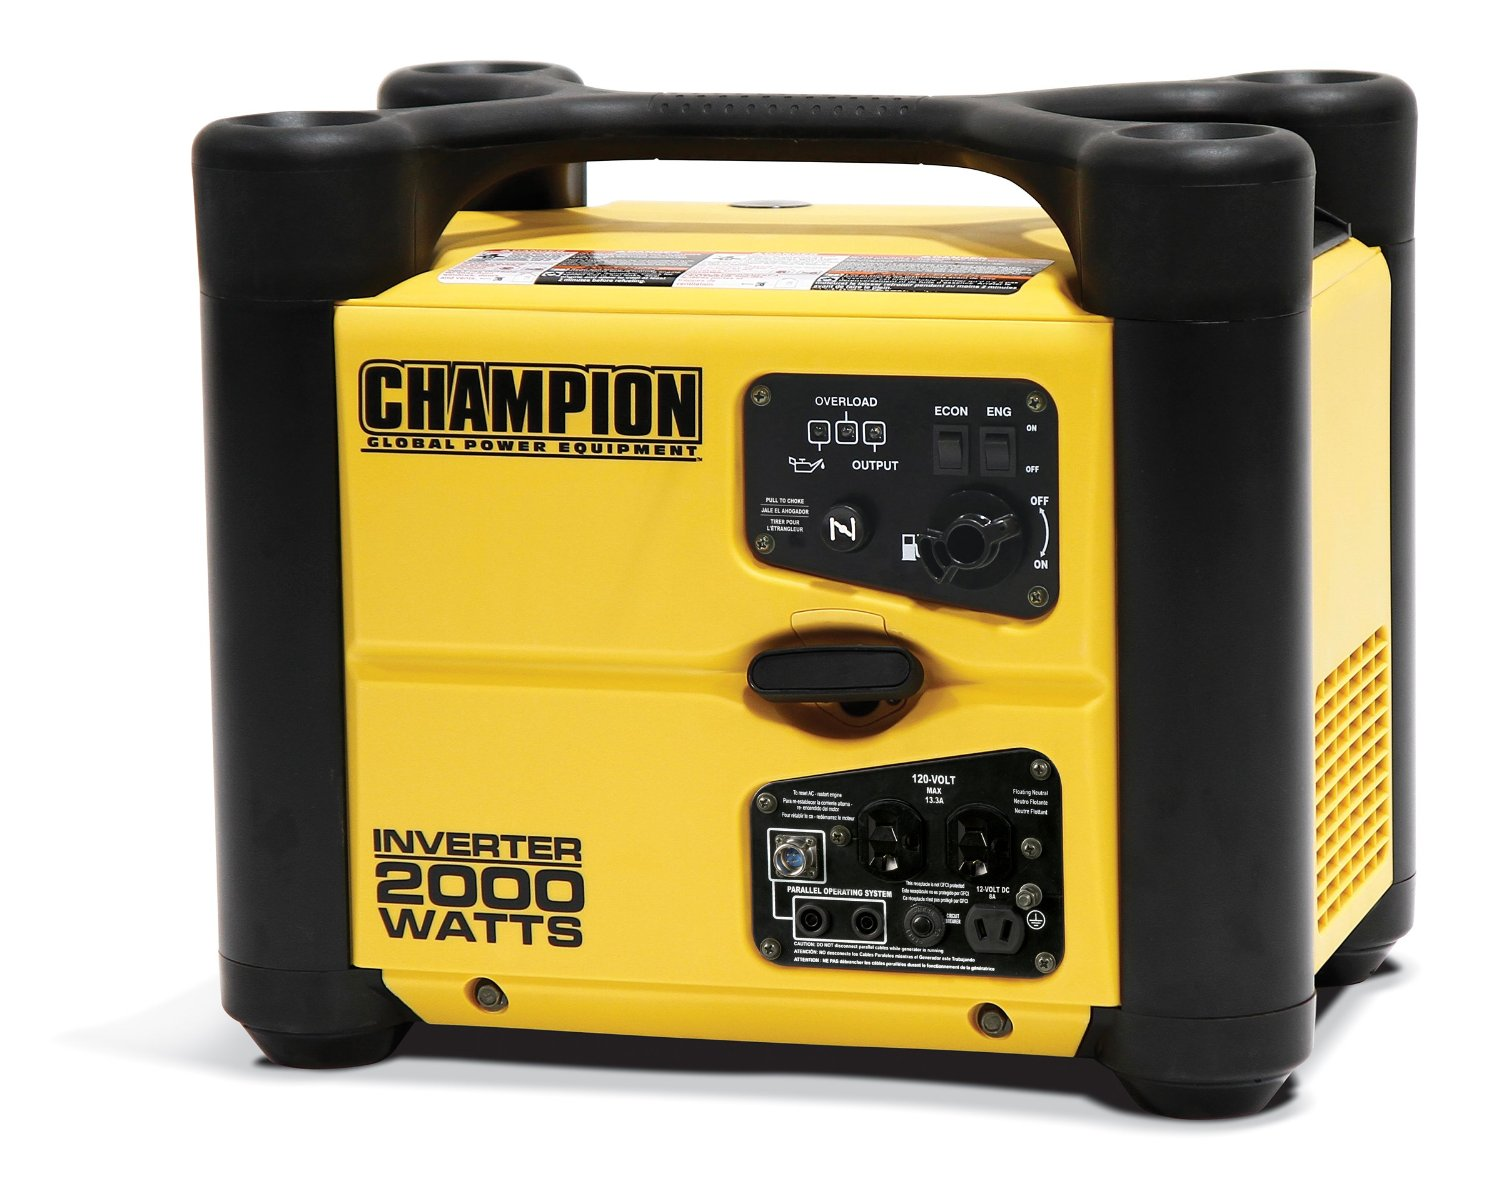 Best Quiet Generators For Home Use The Popular Home